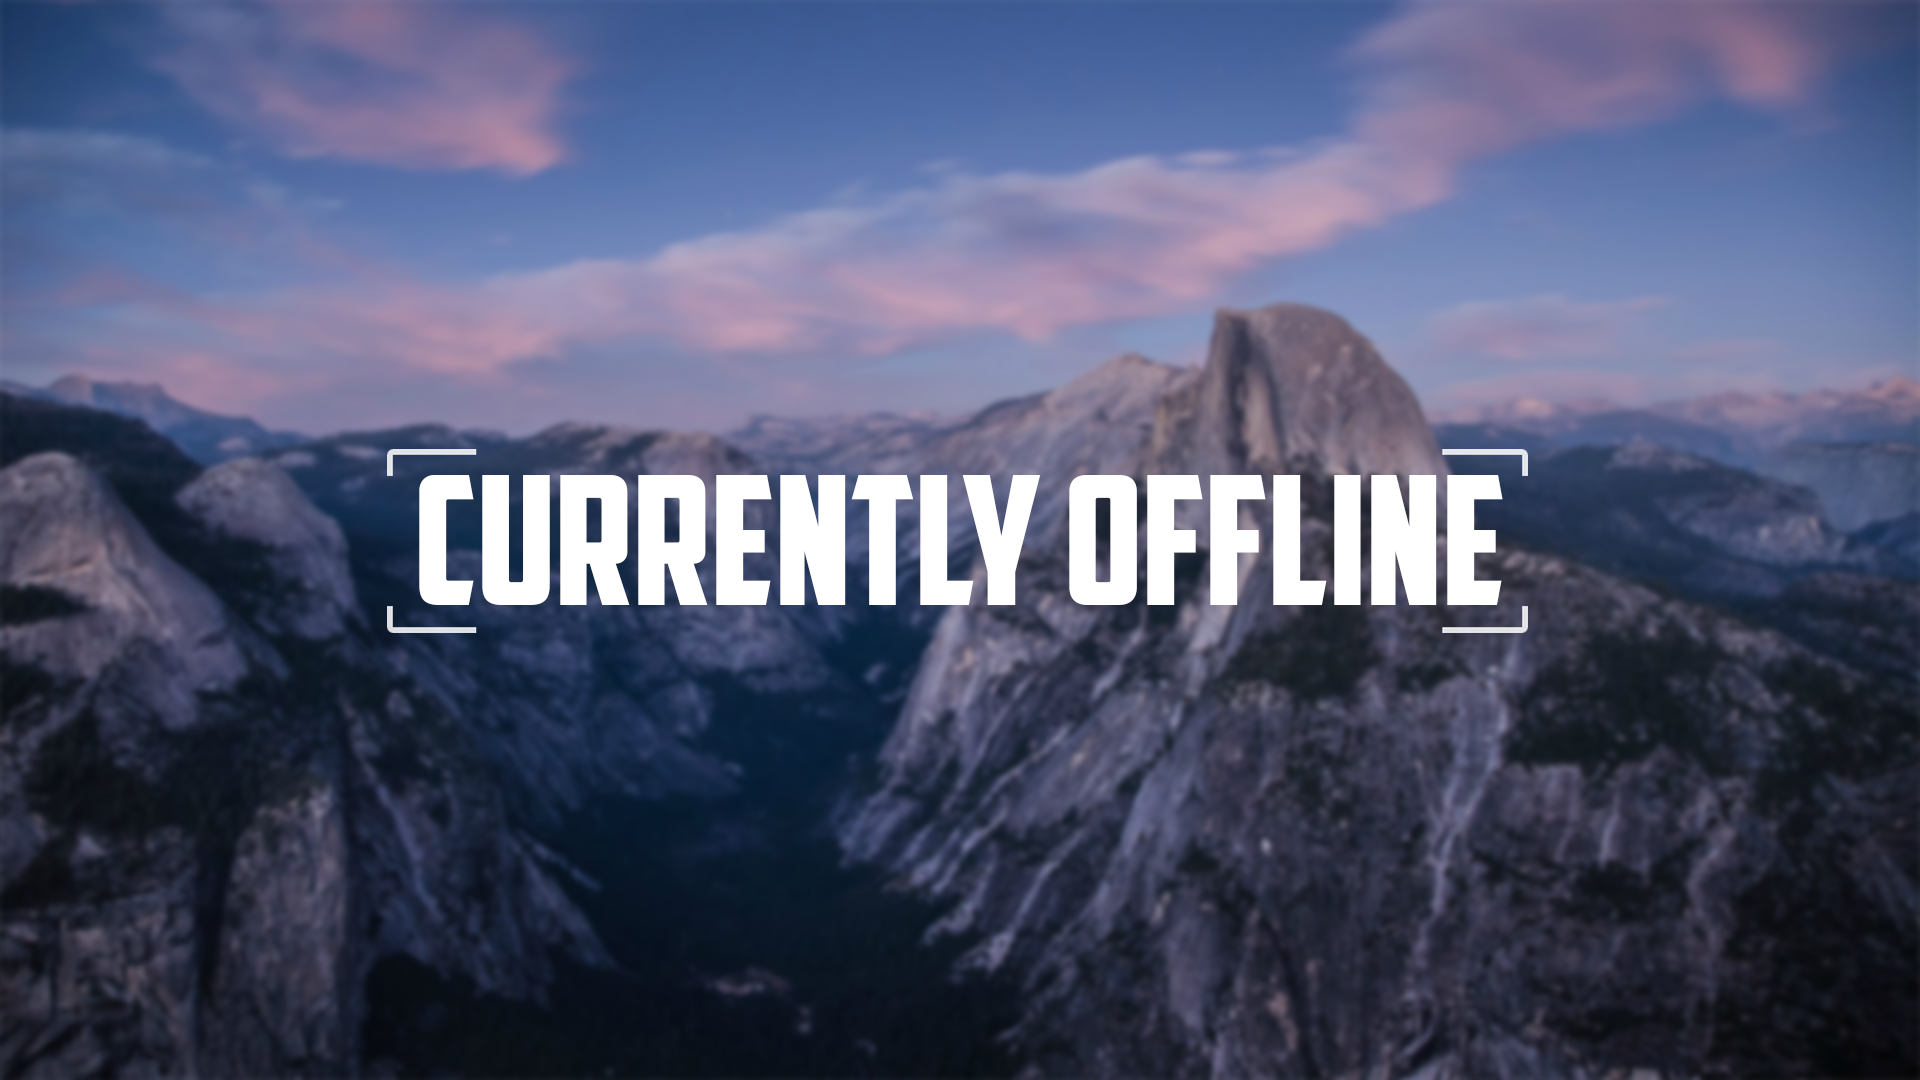 Current offline screen for twitch by KaffeMLG